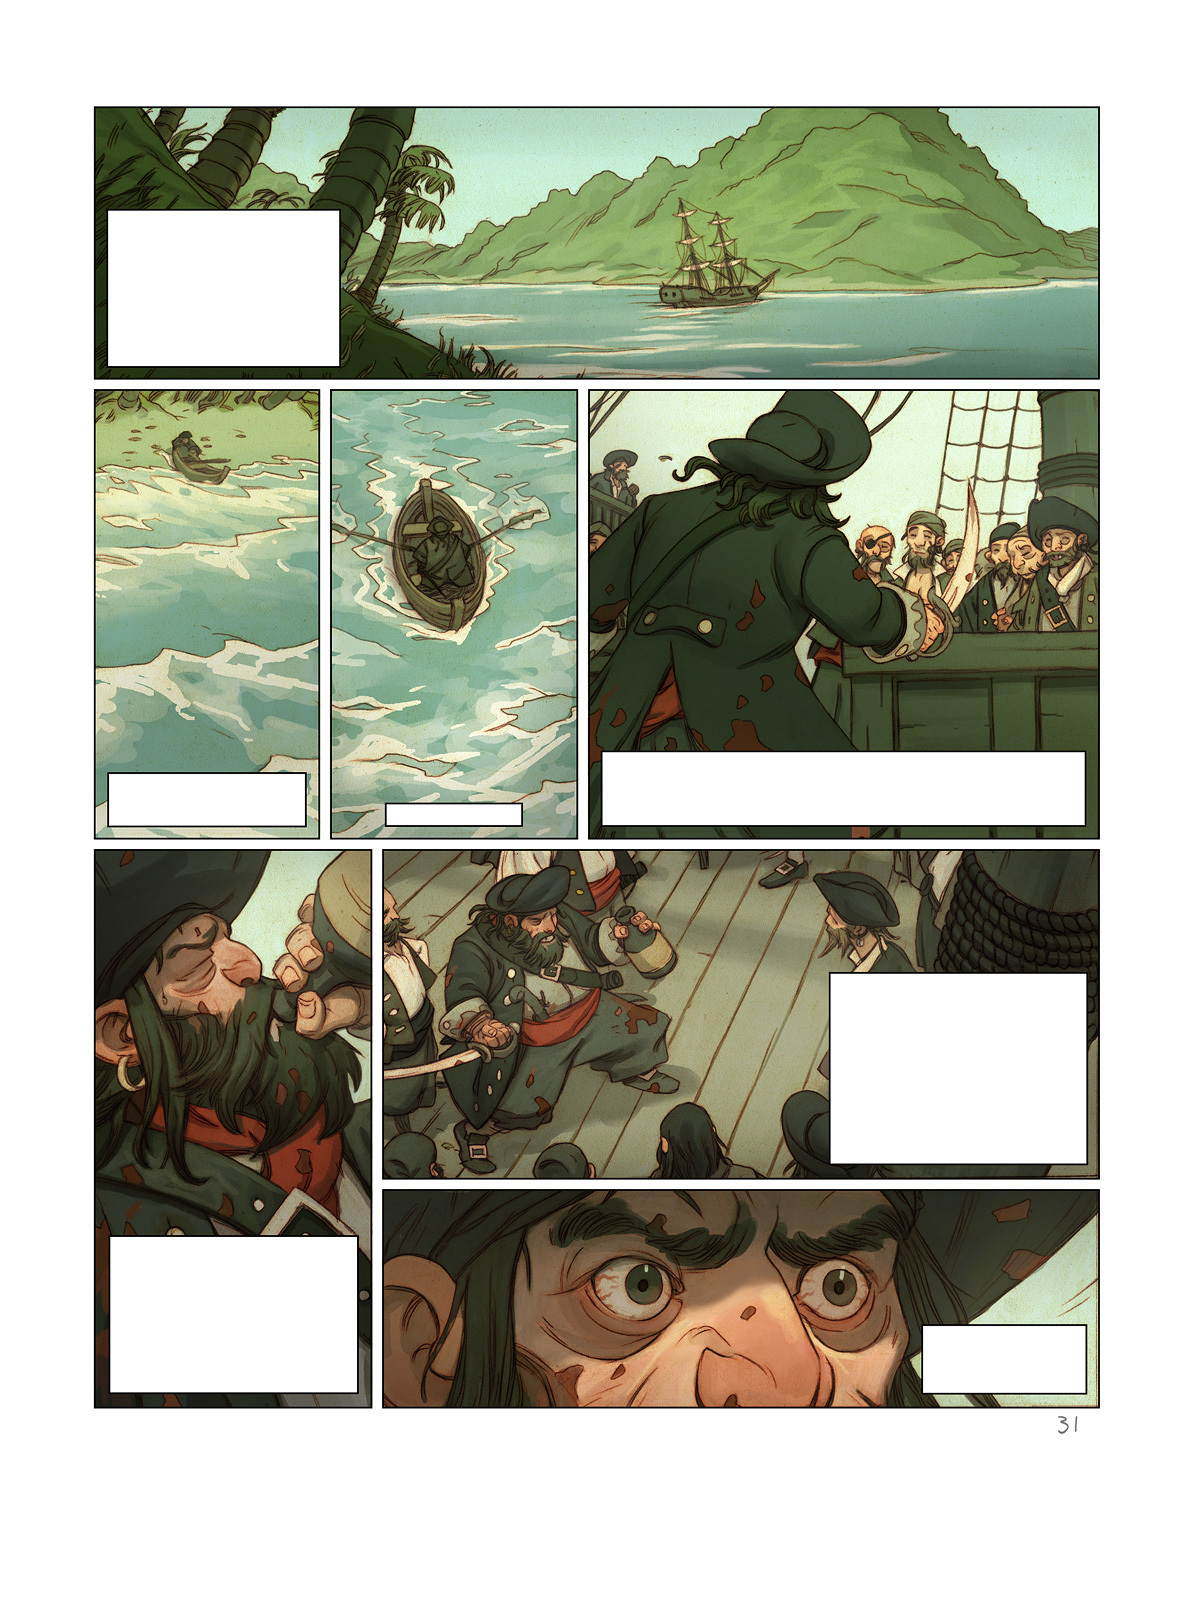 7pirates_page-31-color.jpg